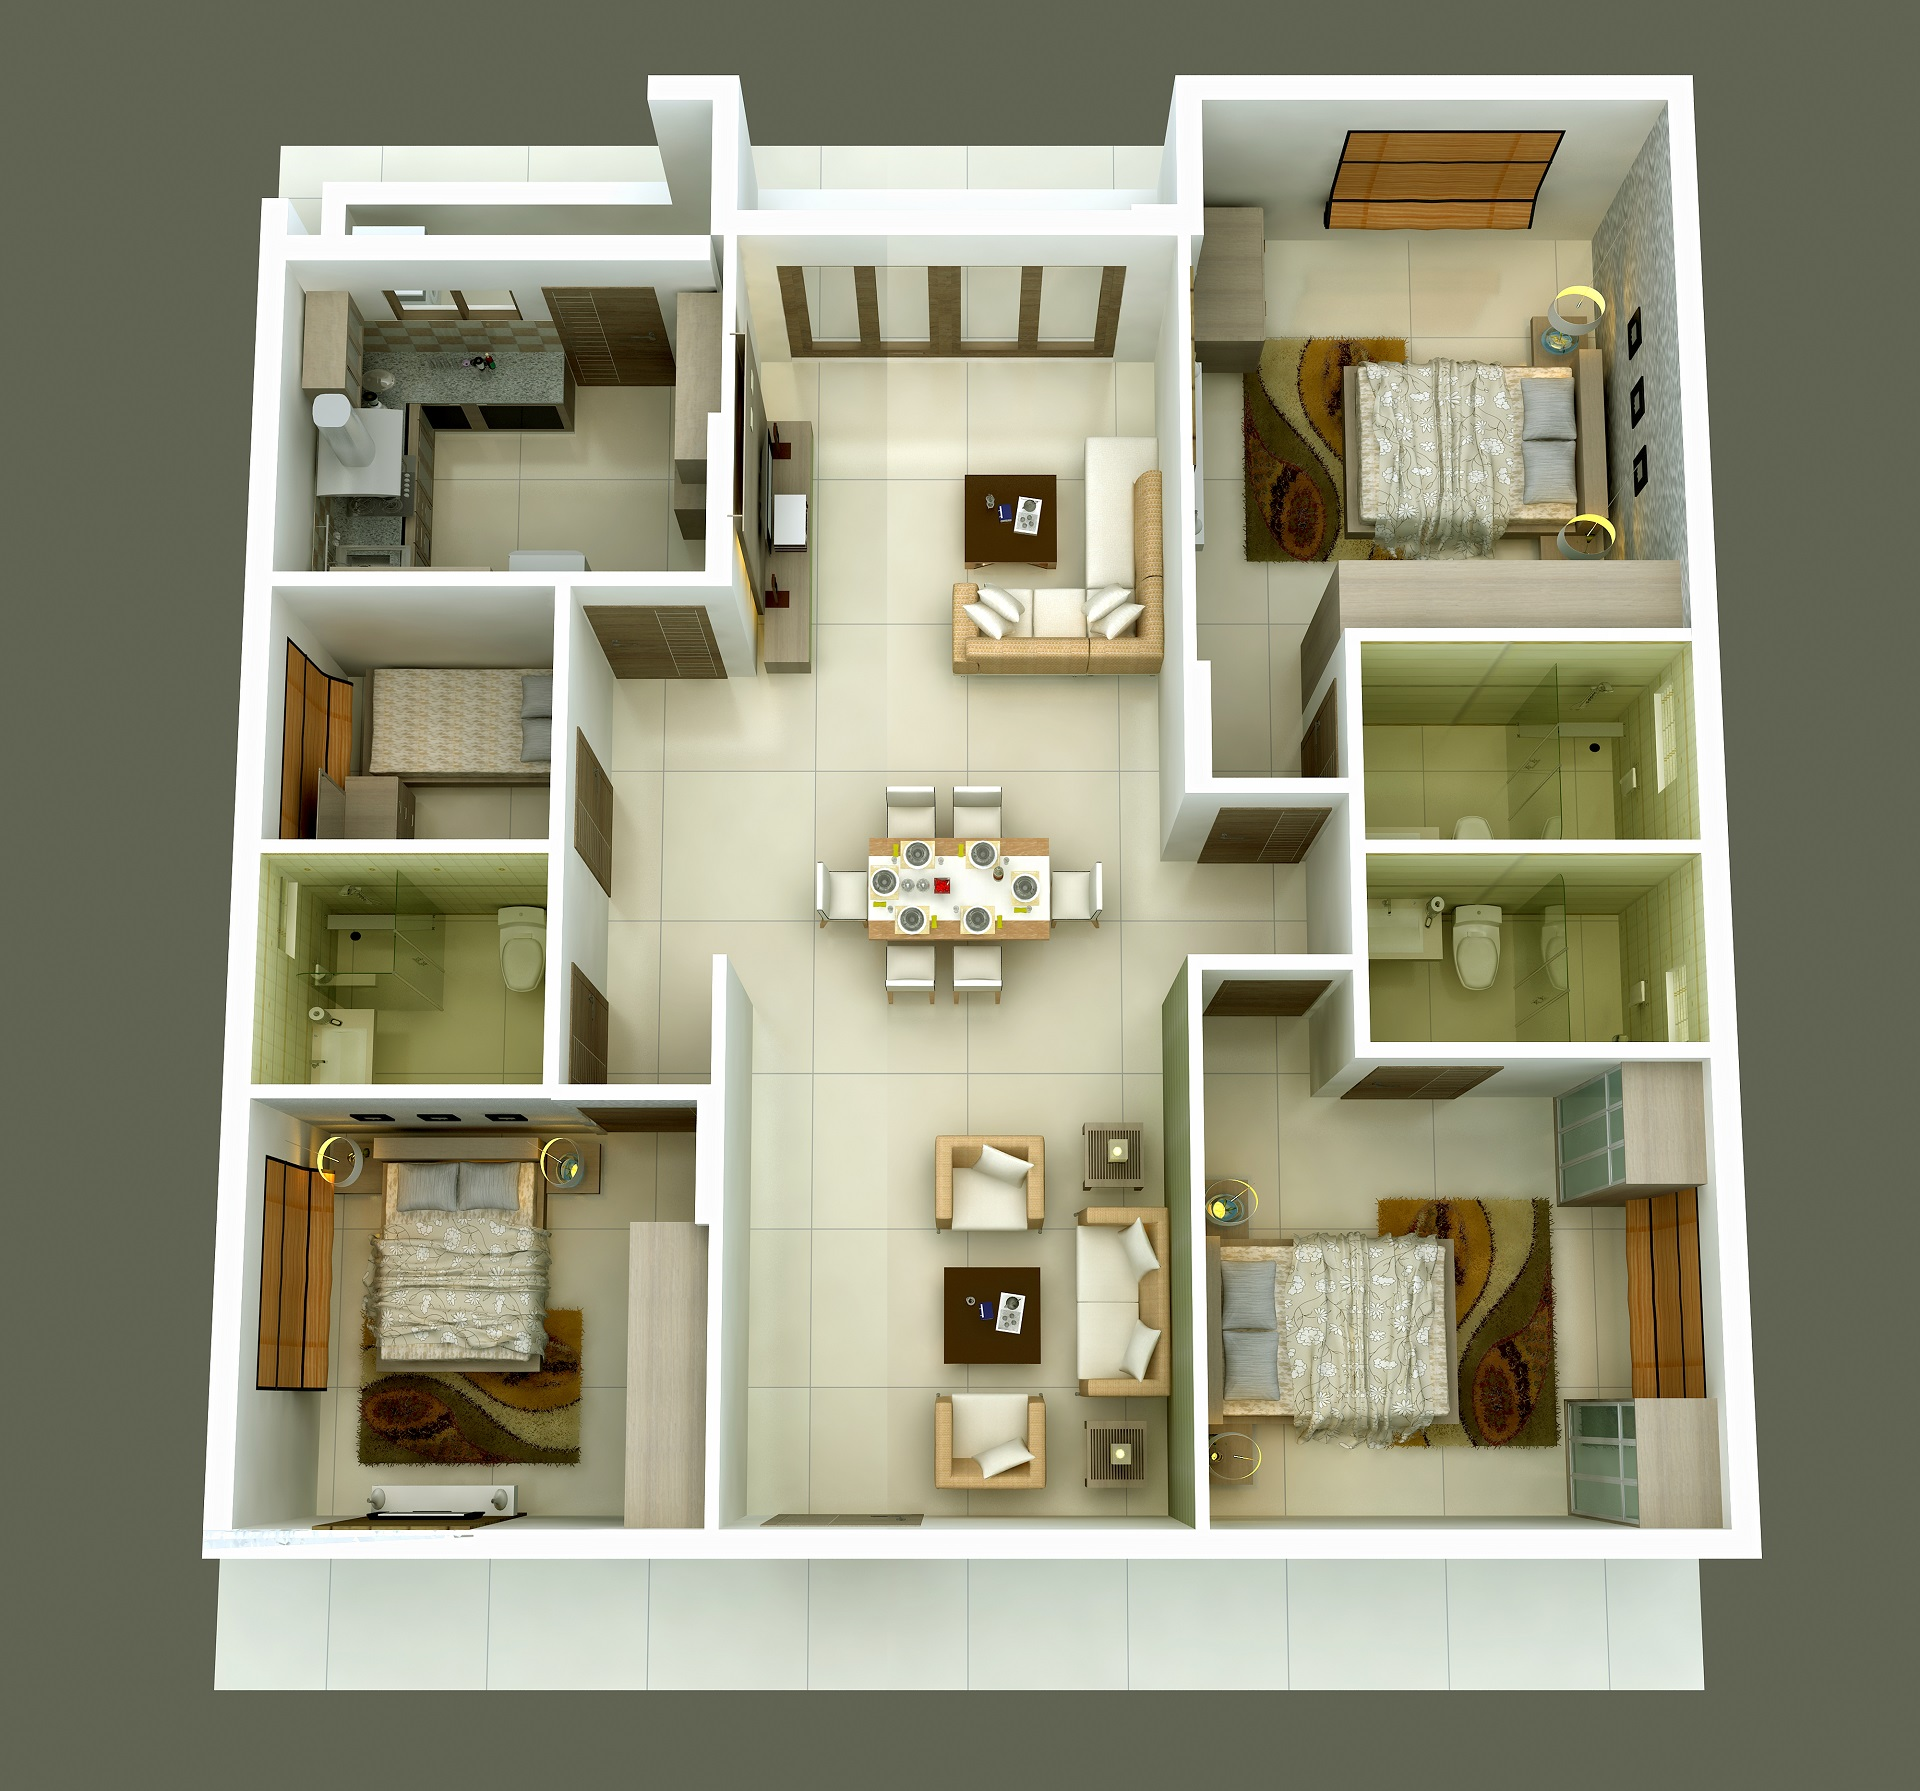 ar-concepts-emami-apartment-residential-north-five-bedroom-image-b